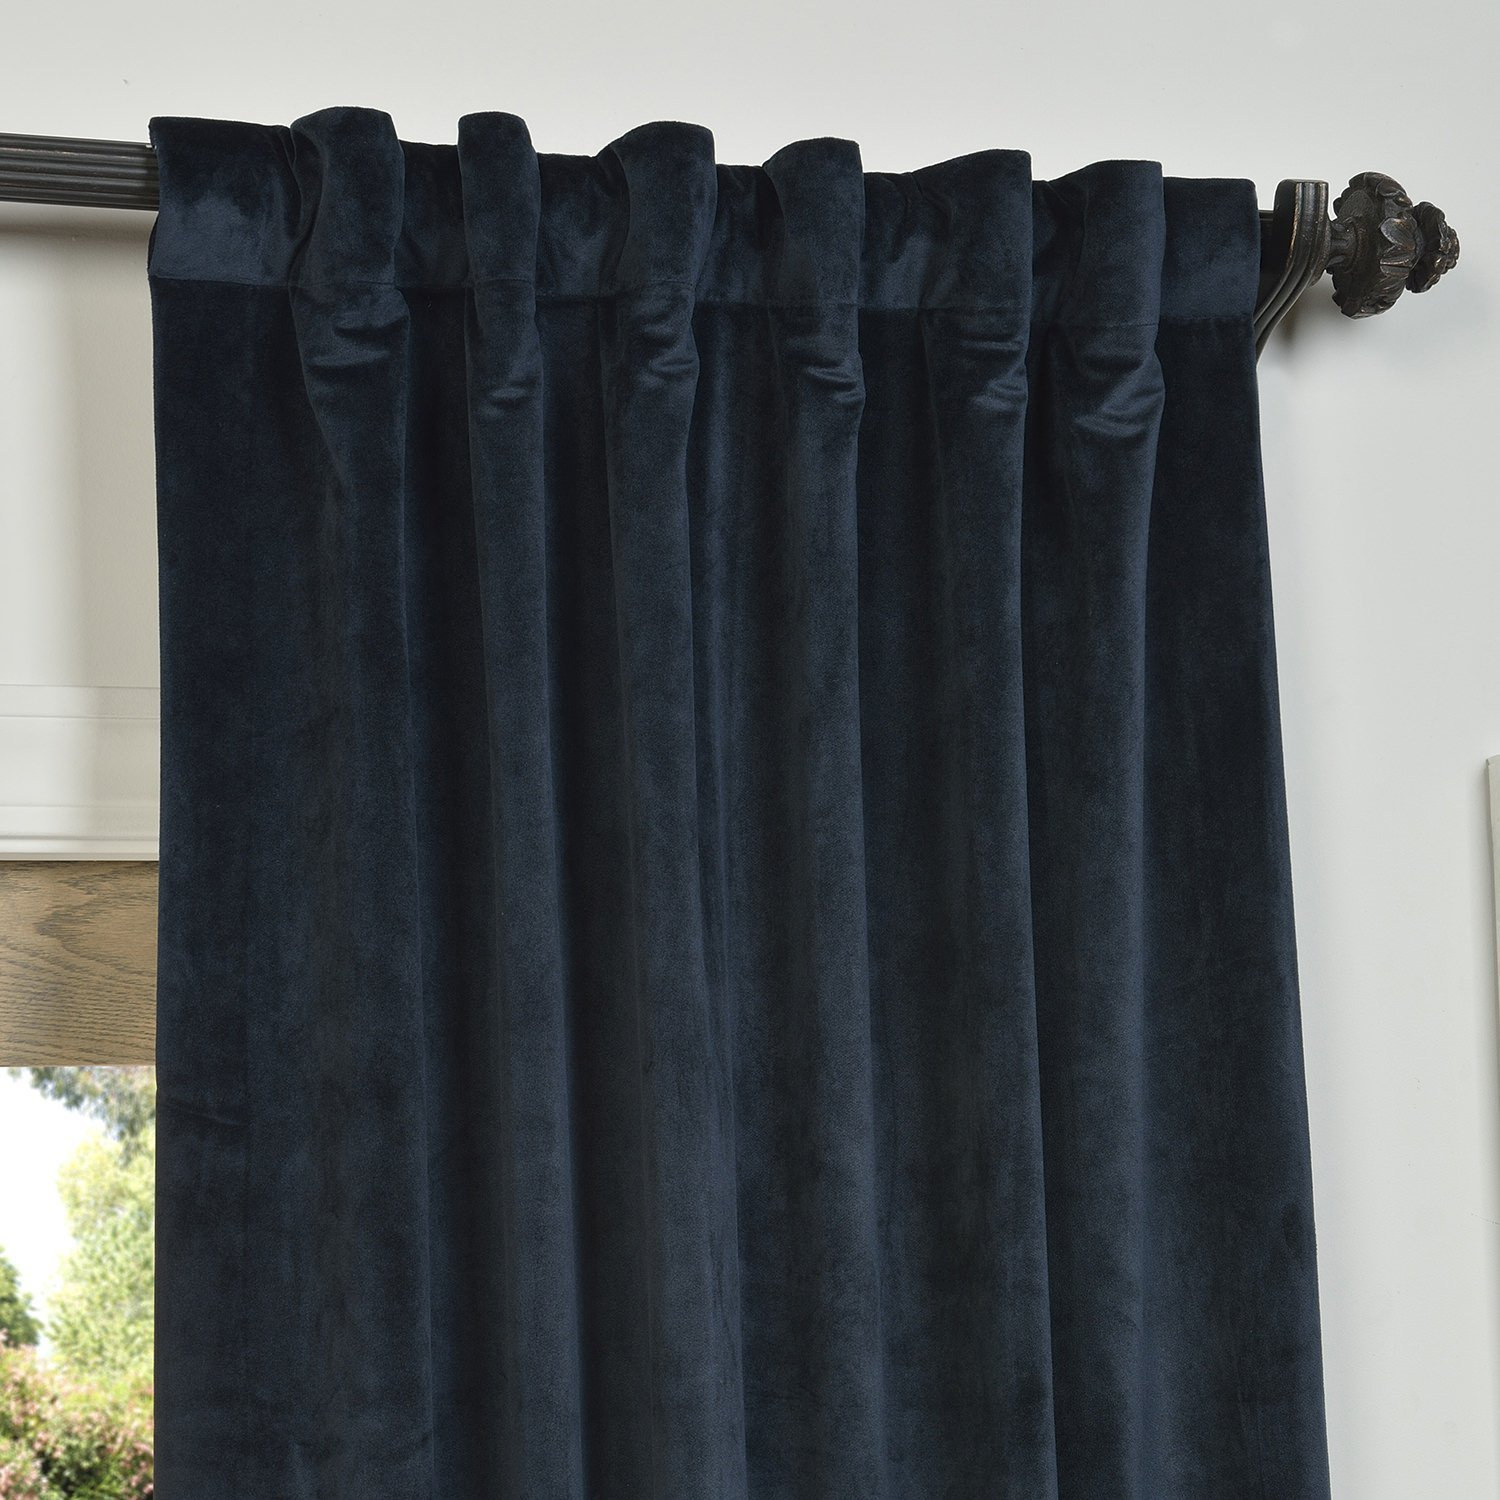 Navy Blue Velvet Curtains 116655 Lush Decor Velvet Dream In Velvet Dream Silver Curtain Panel Pairs (View 24 of 31)